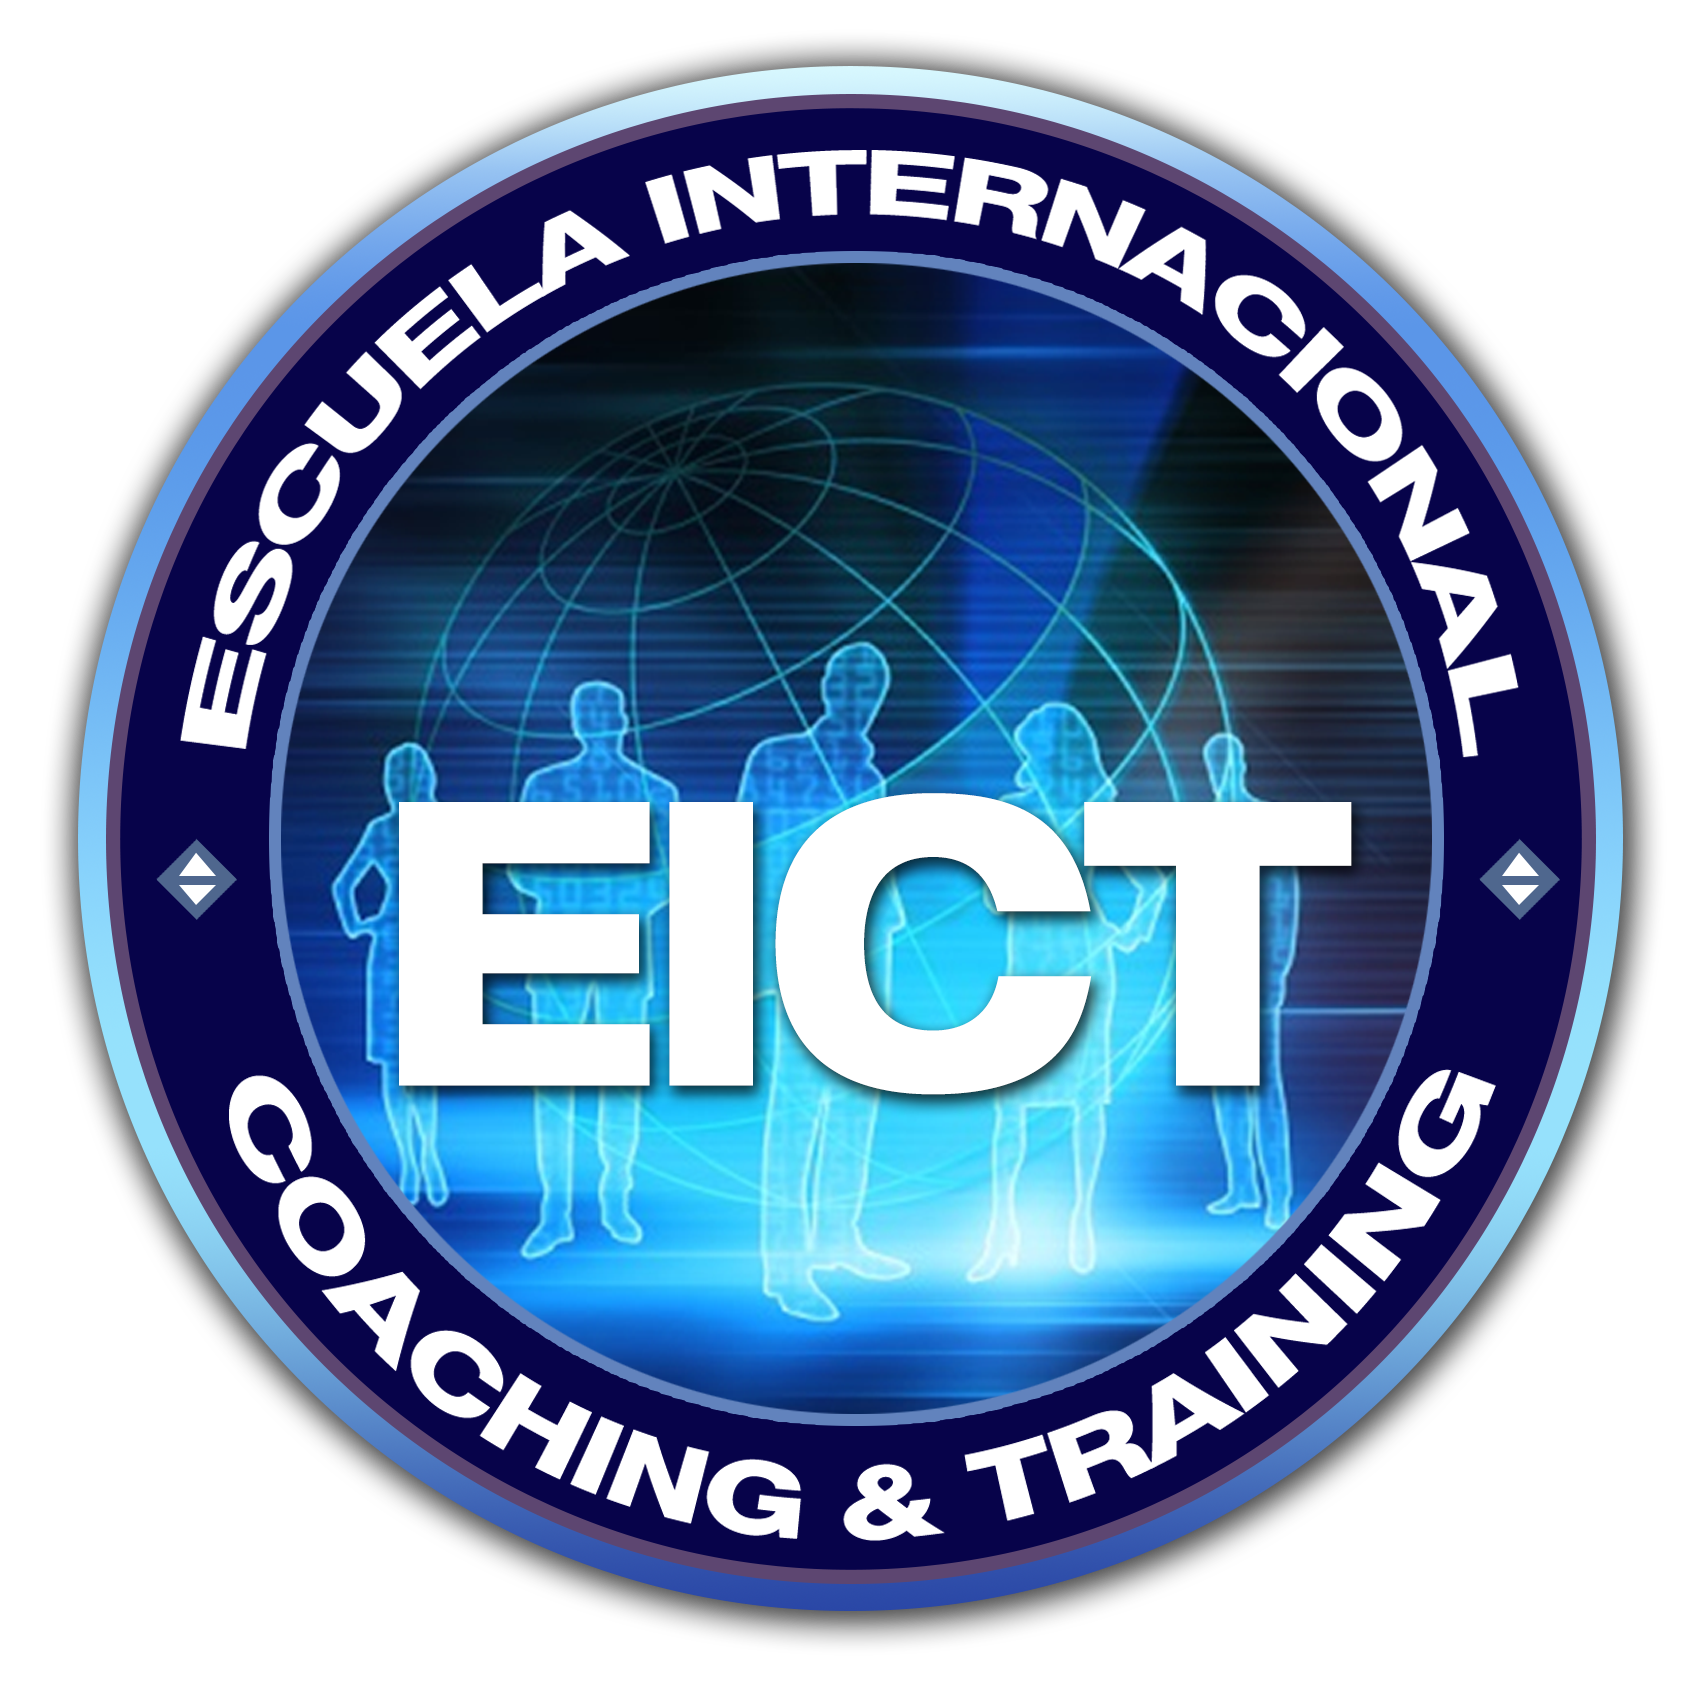 Escuela Internacional de Coaching